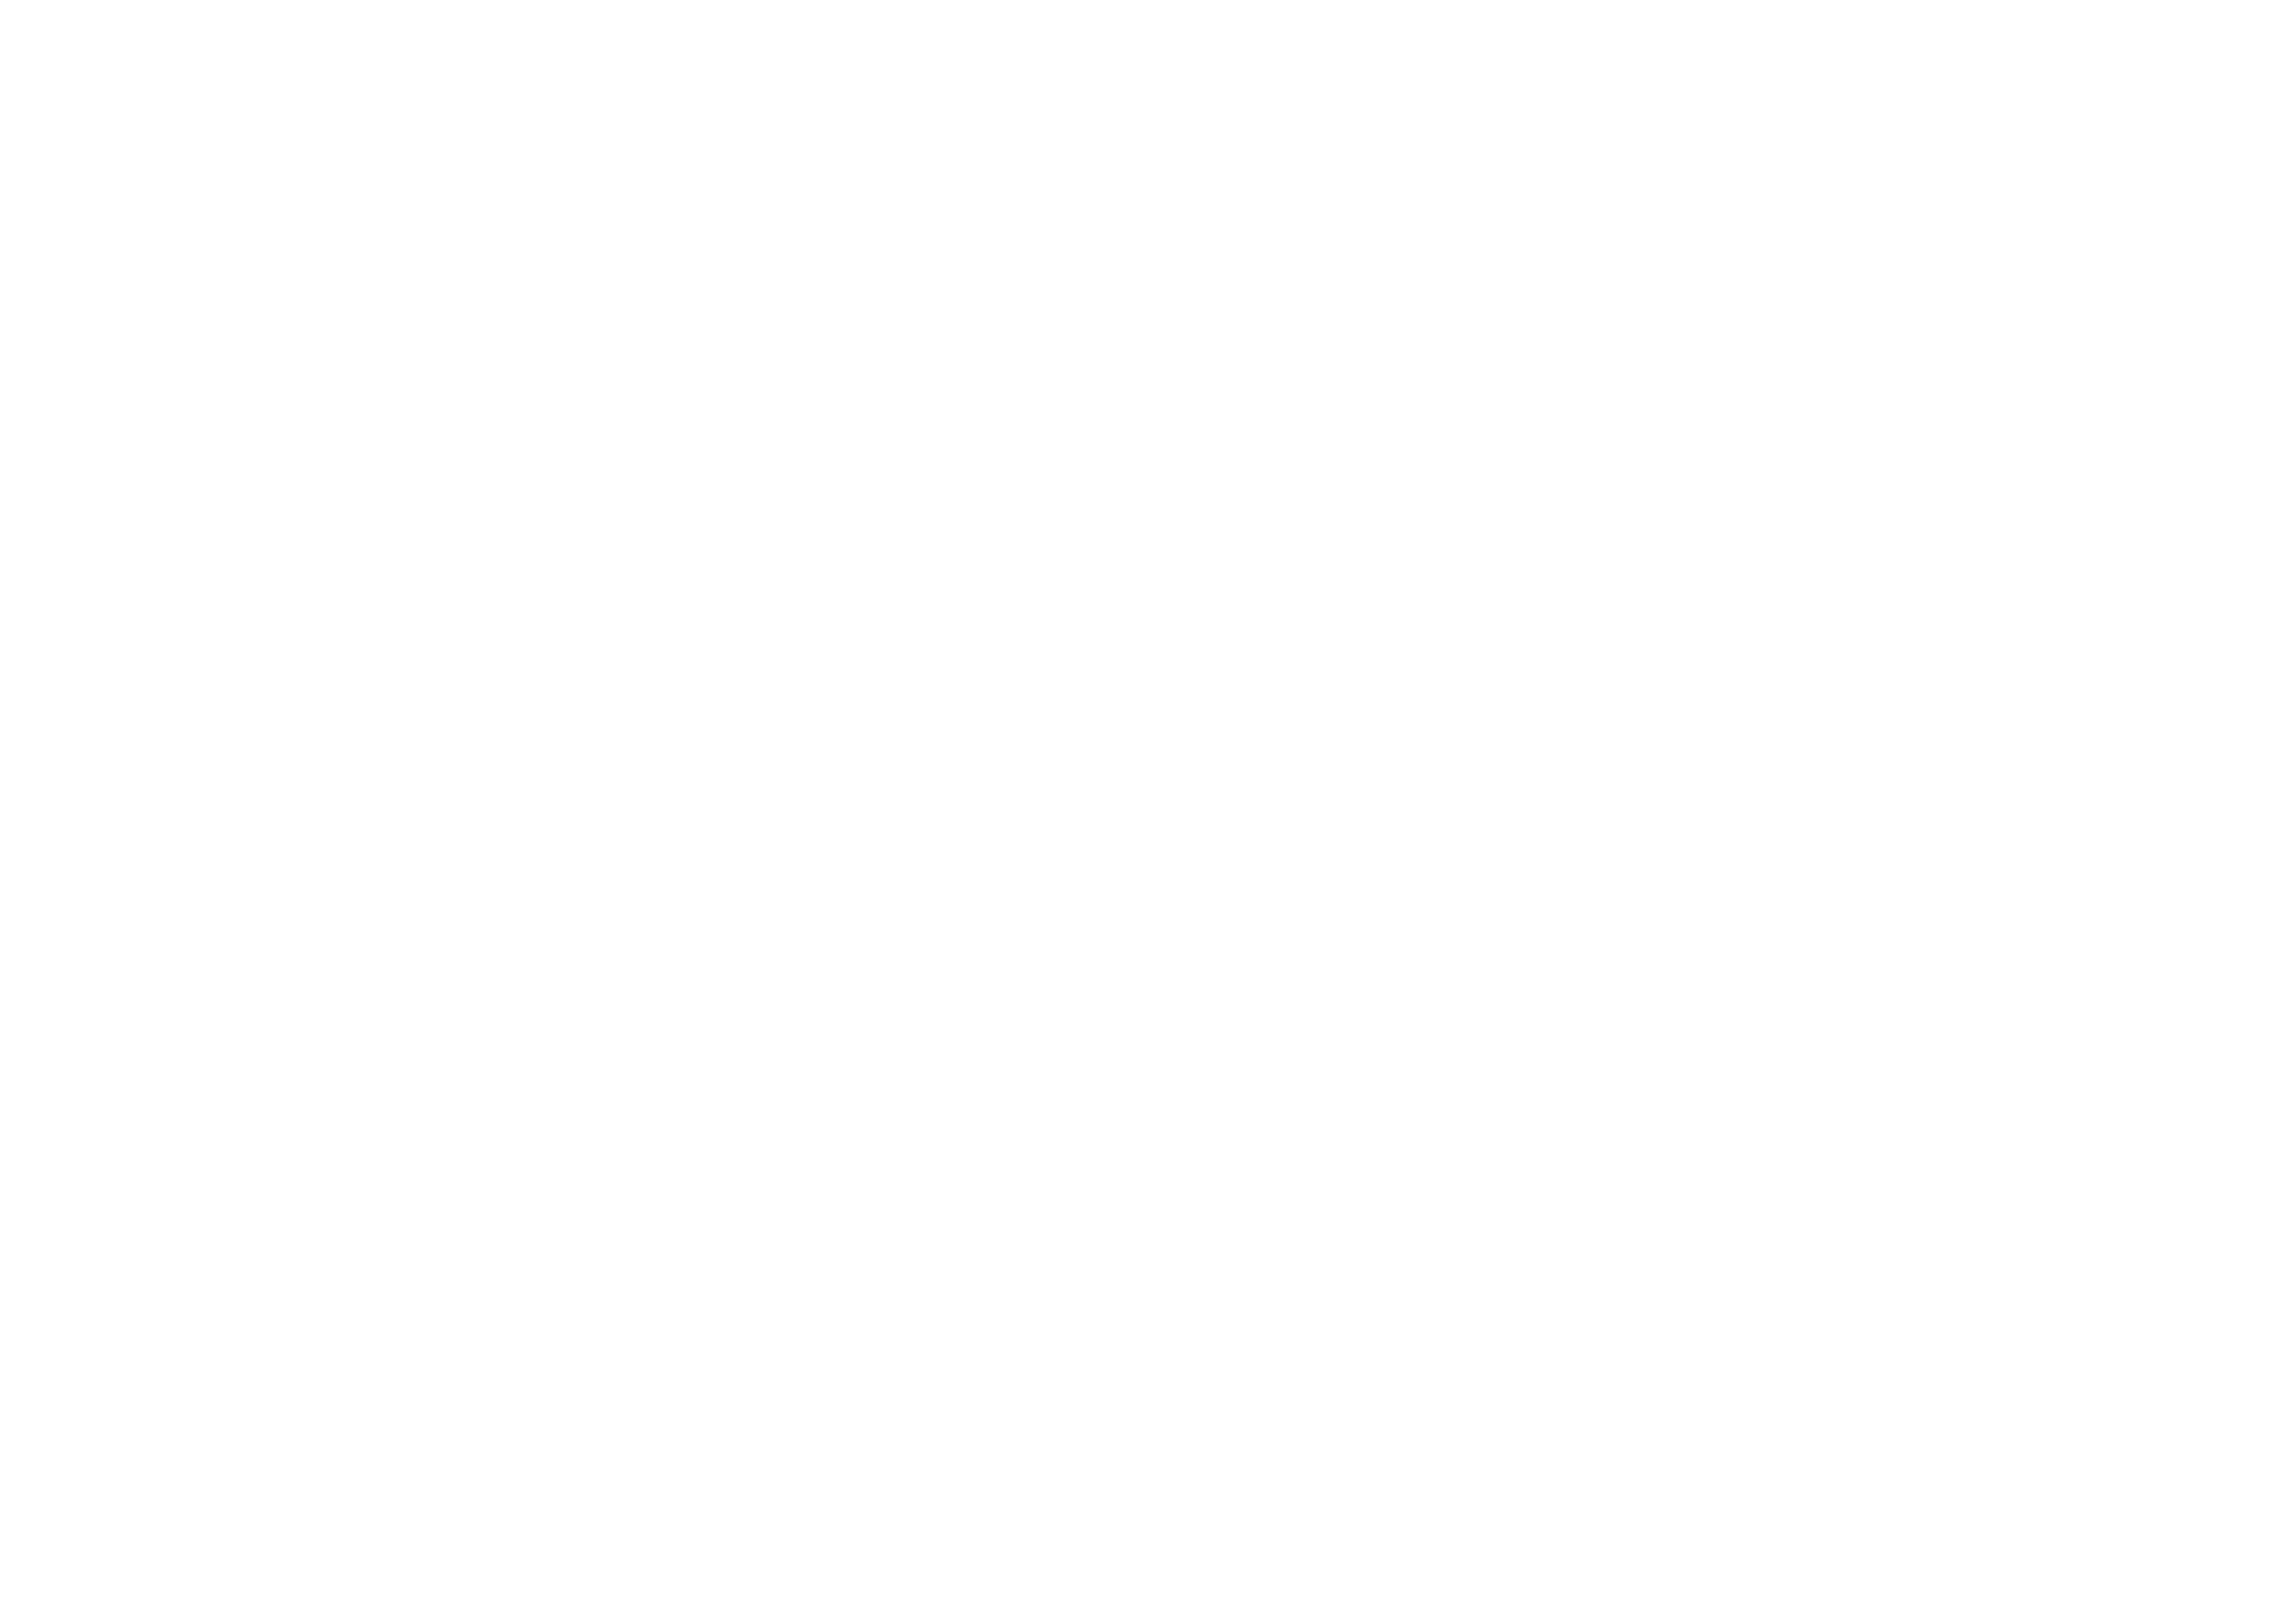 The Cabana Inn logo.